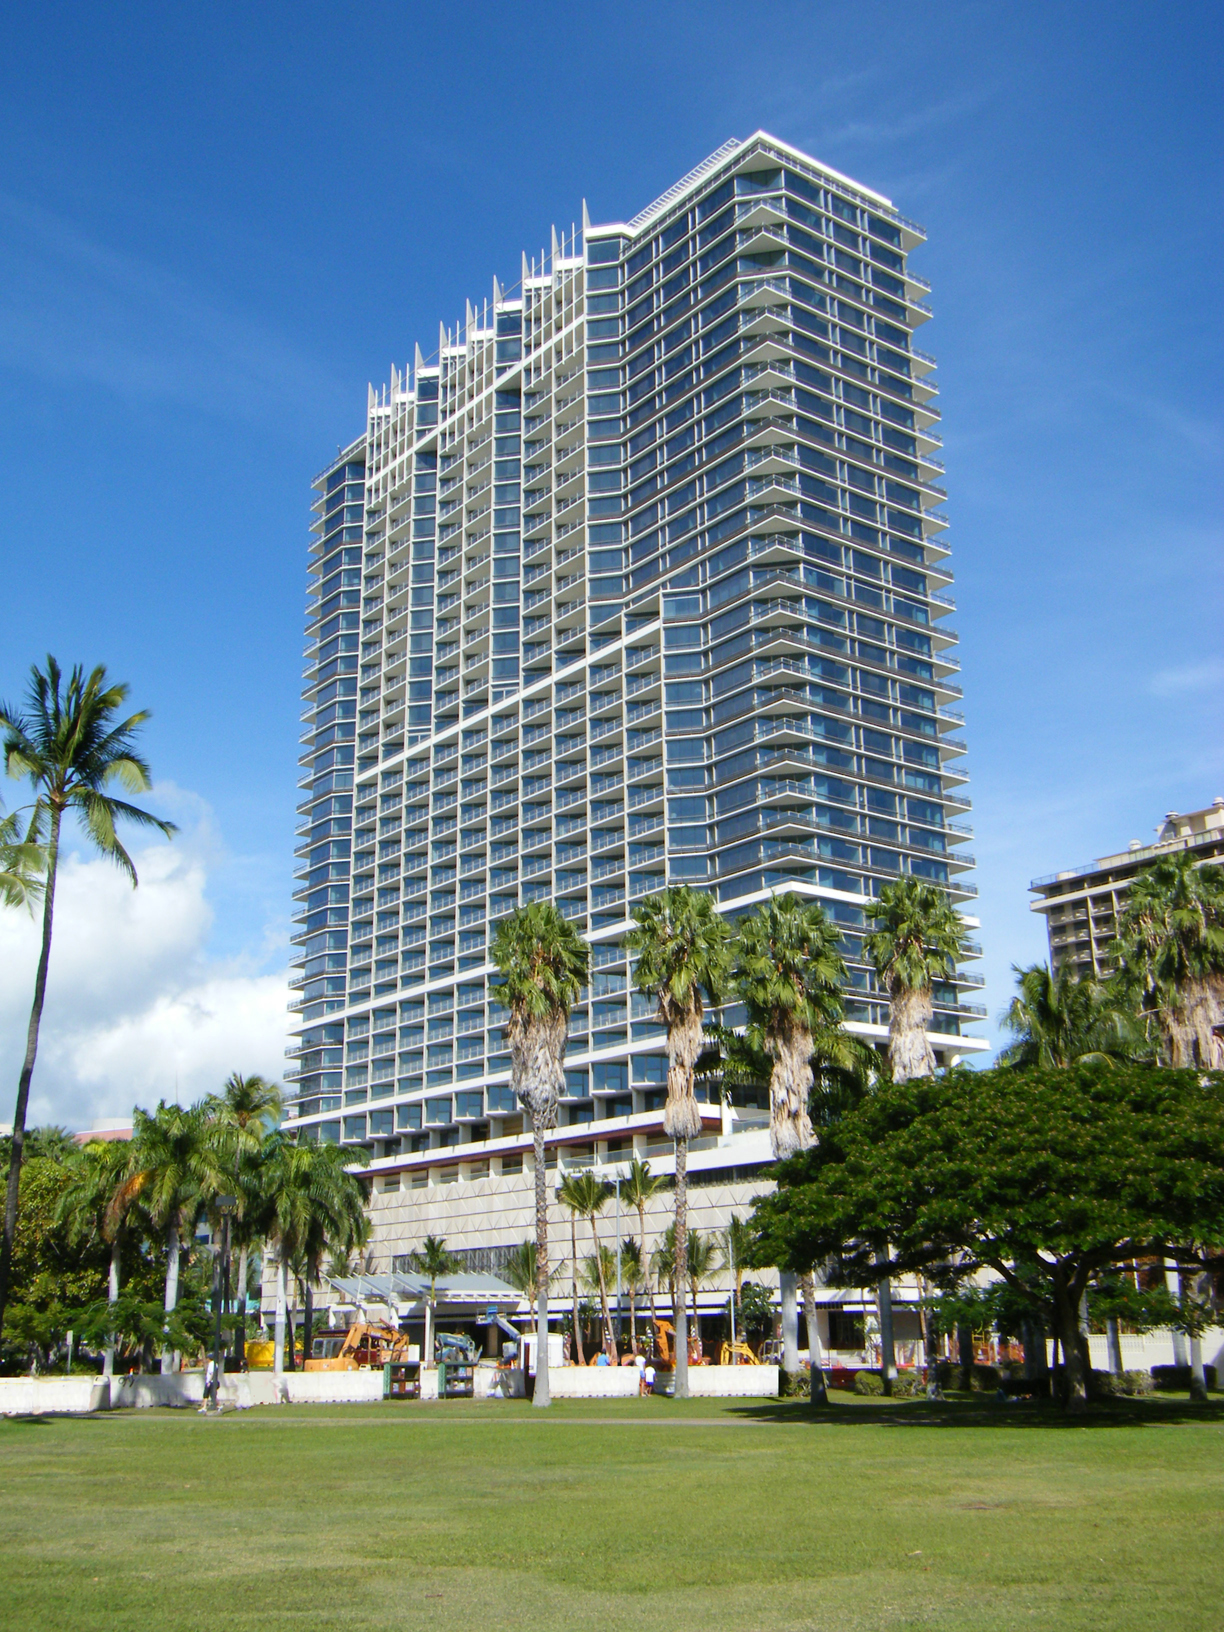 Trump Tower Waikiki Condos For Sale - Beach Cities Real Estate |Trump Tower Waikiki Hotel